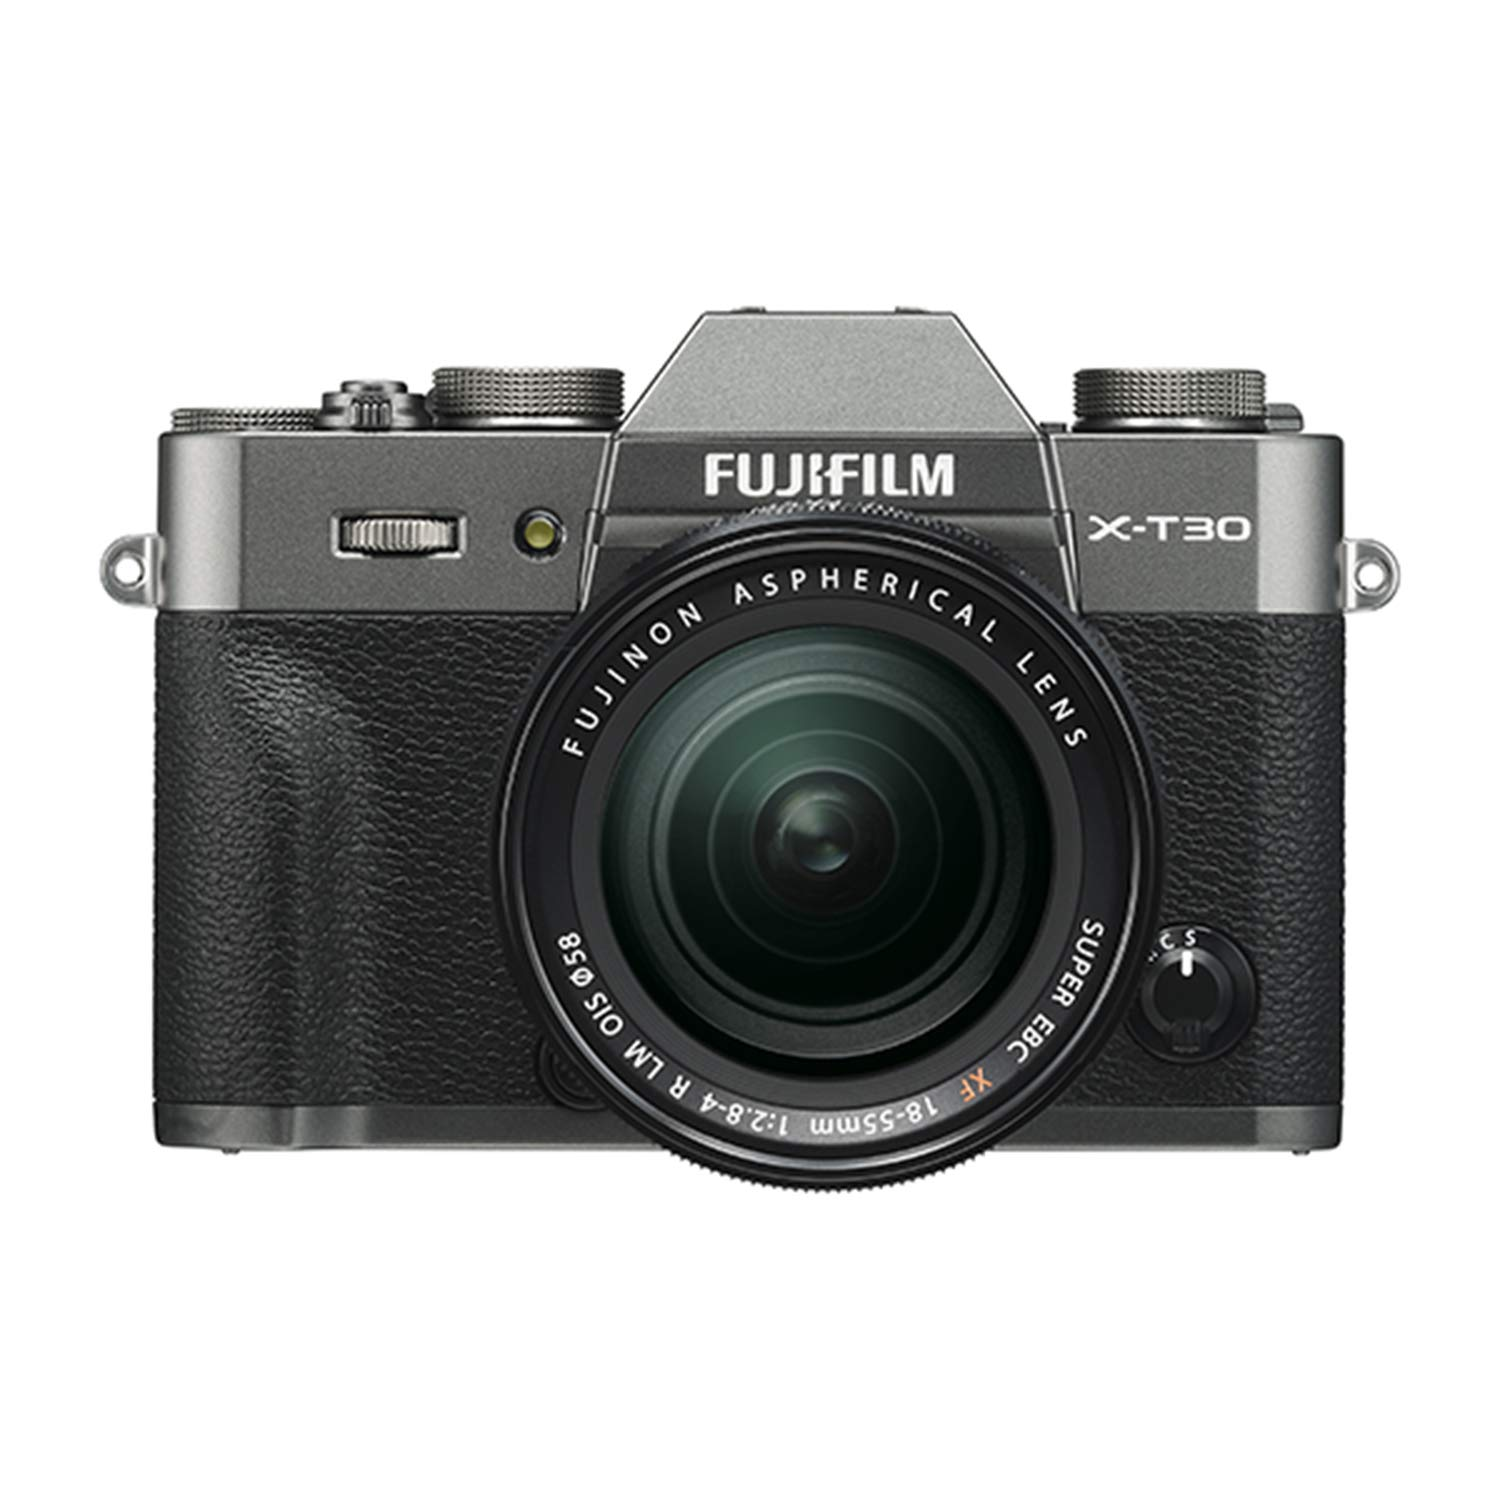 Fujifilm X-T30 Mirrorless Digital Camera w/XF18-55mm F2.8-4.0 R LM OIS Lens, Charcoal Silver